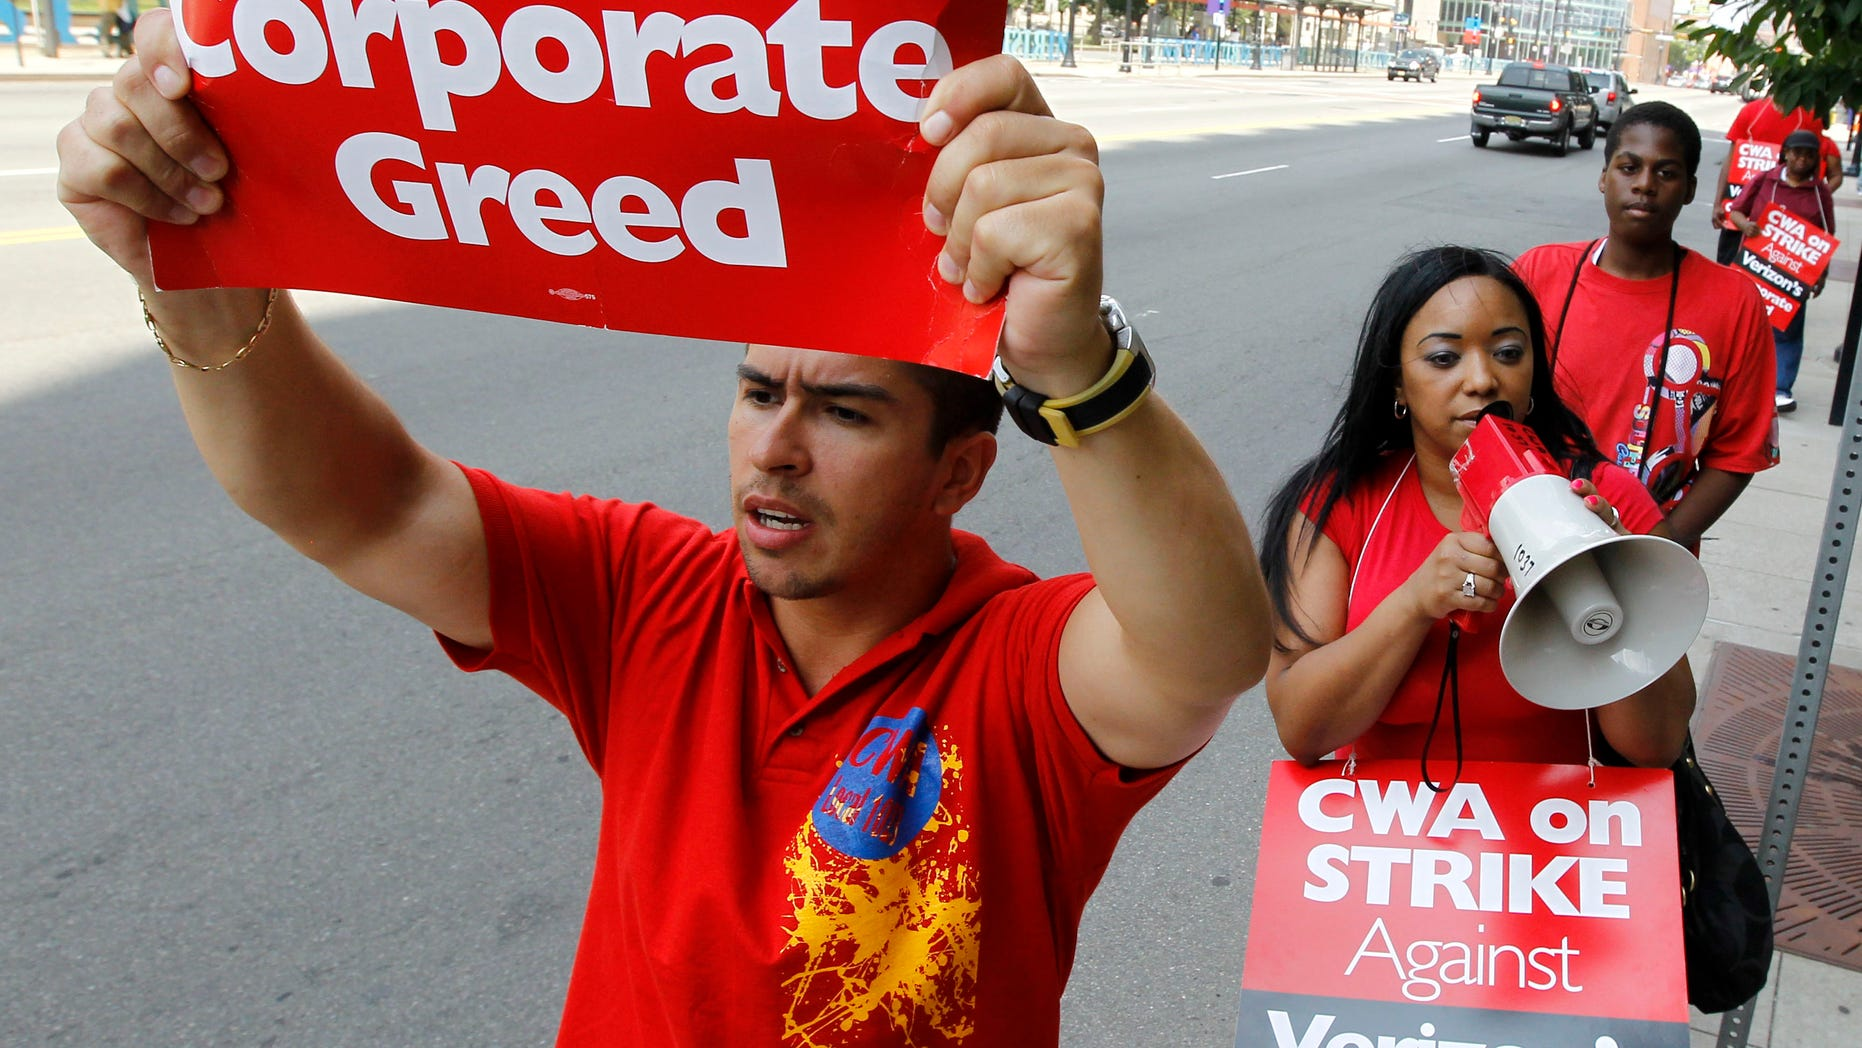 Ferdinand Hernandez, left, a sales associate who works for Verizon in Newark, N.J., holds a sign as he and coworker Leyda Jimenez, center, a multilingual consultant, picket outside of a Verizon store, Monday, Aug. 8, 2011, in Newark, N.J.